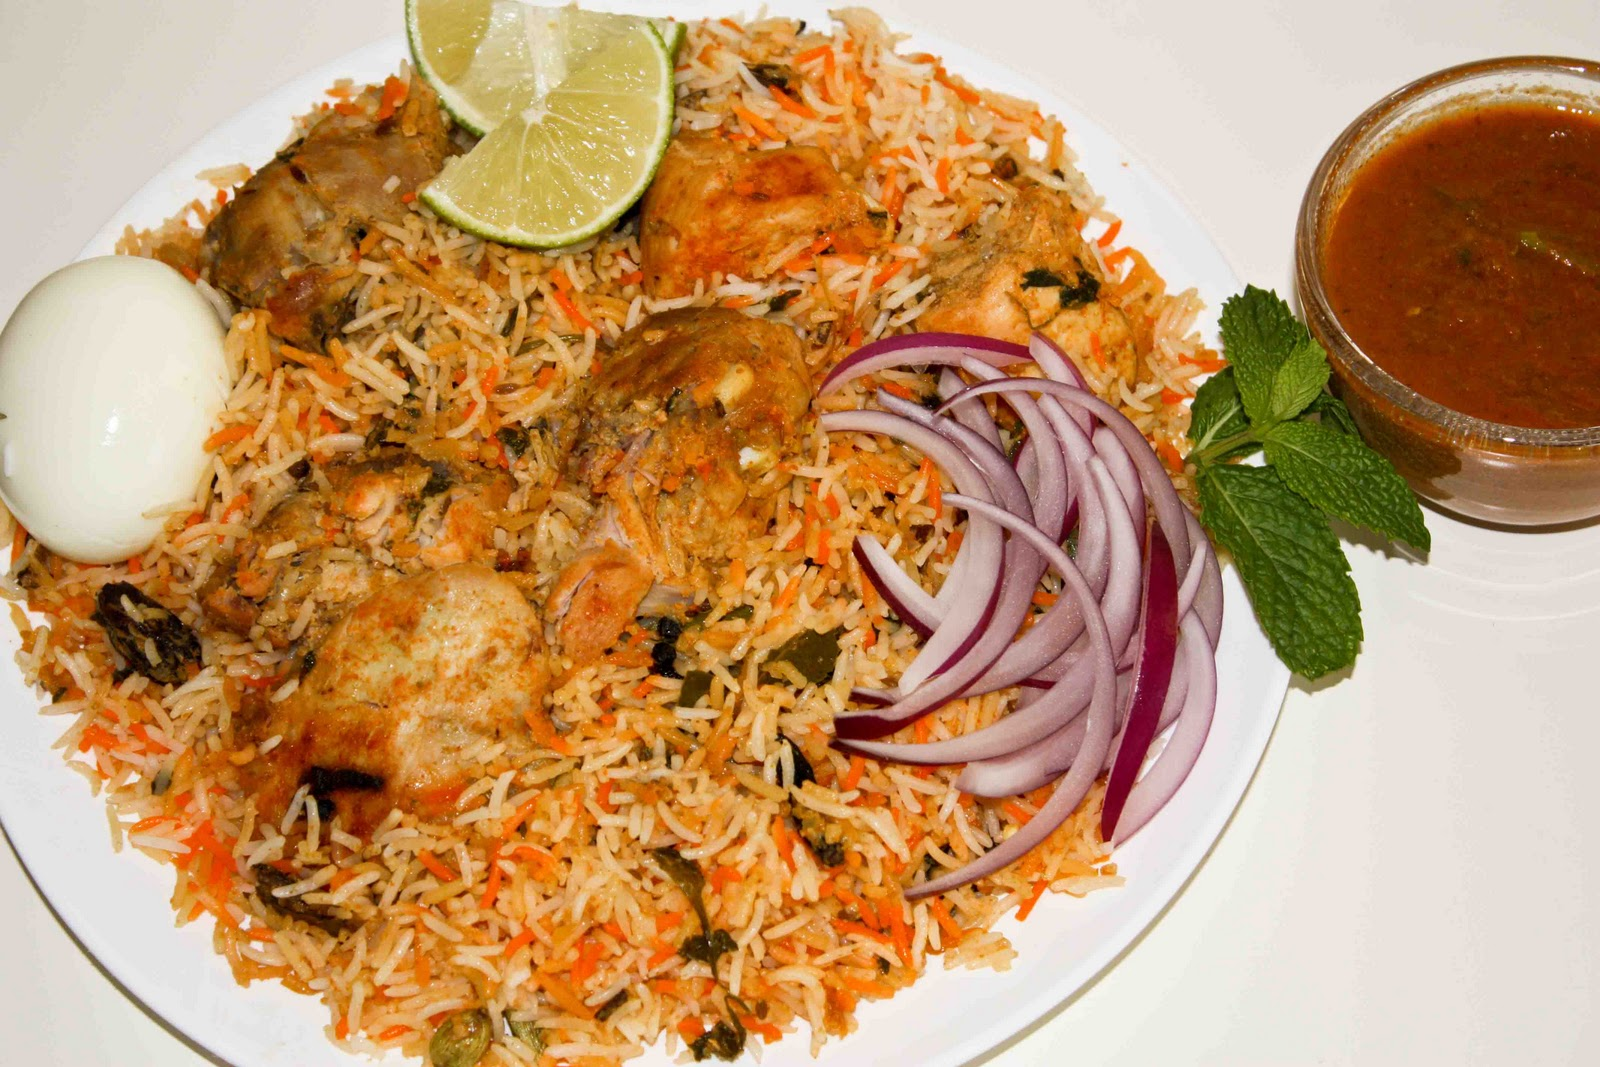 chicken biryani A standard in indian cuisine, biryani gets plenty of flavor and fragrance from the spice mix, which typically includes turmeric, cardamom.